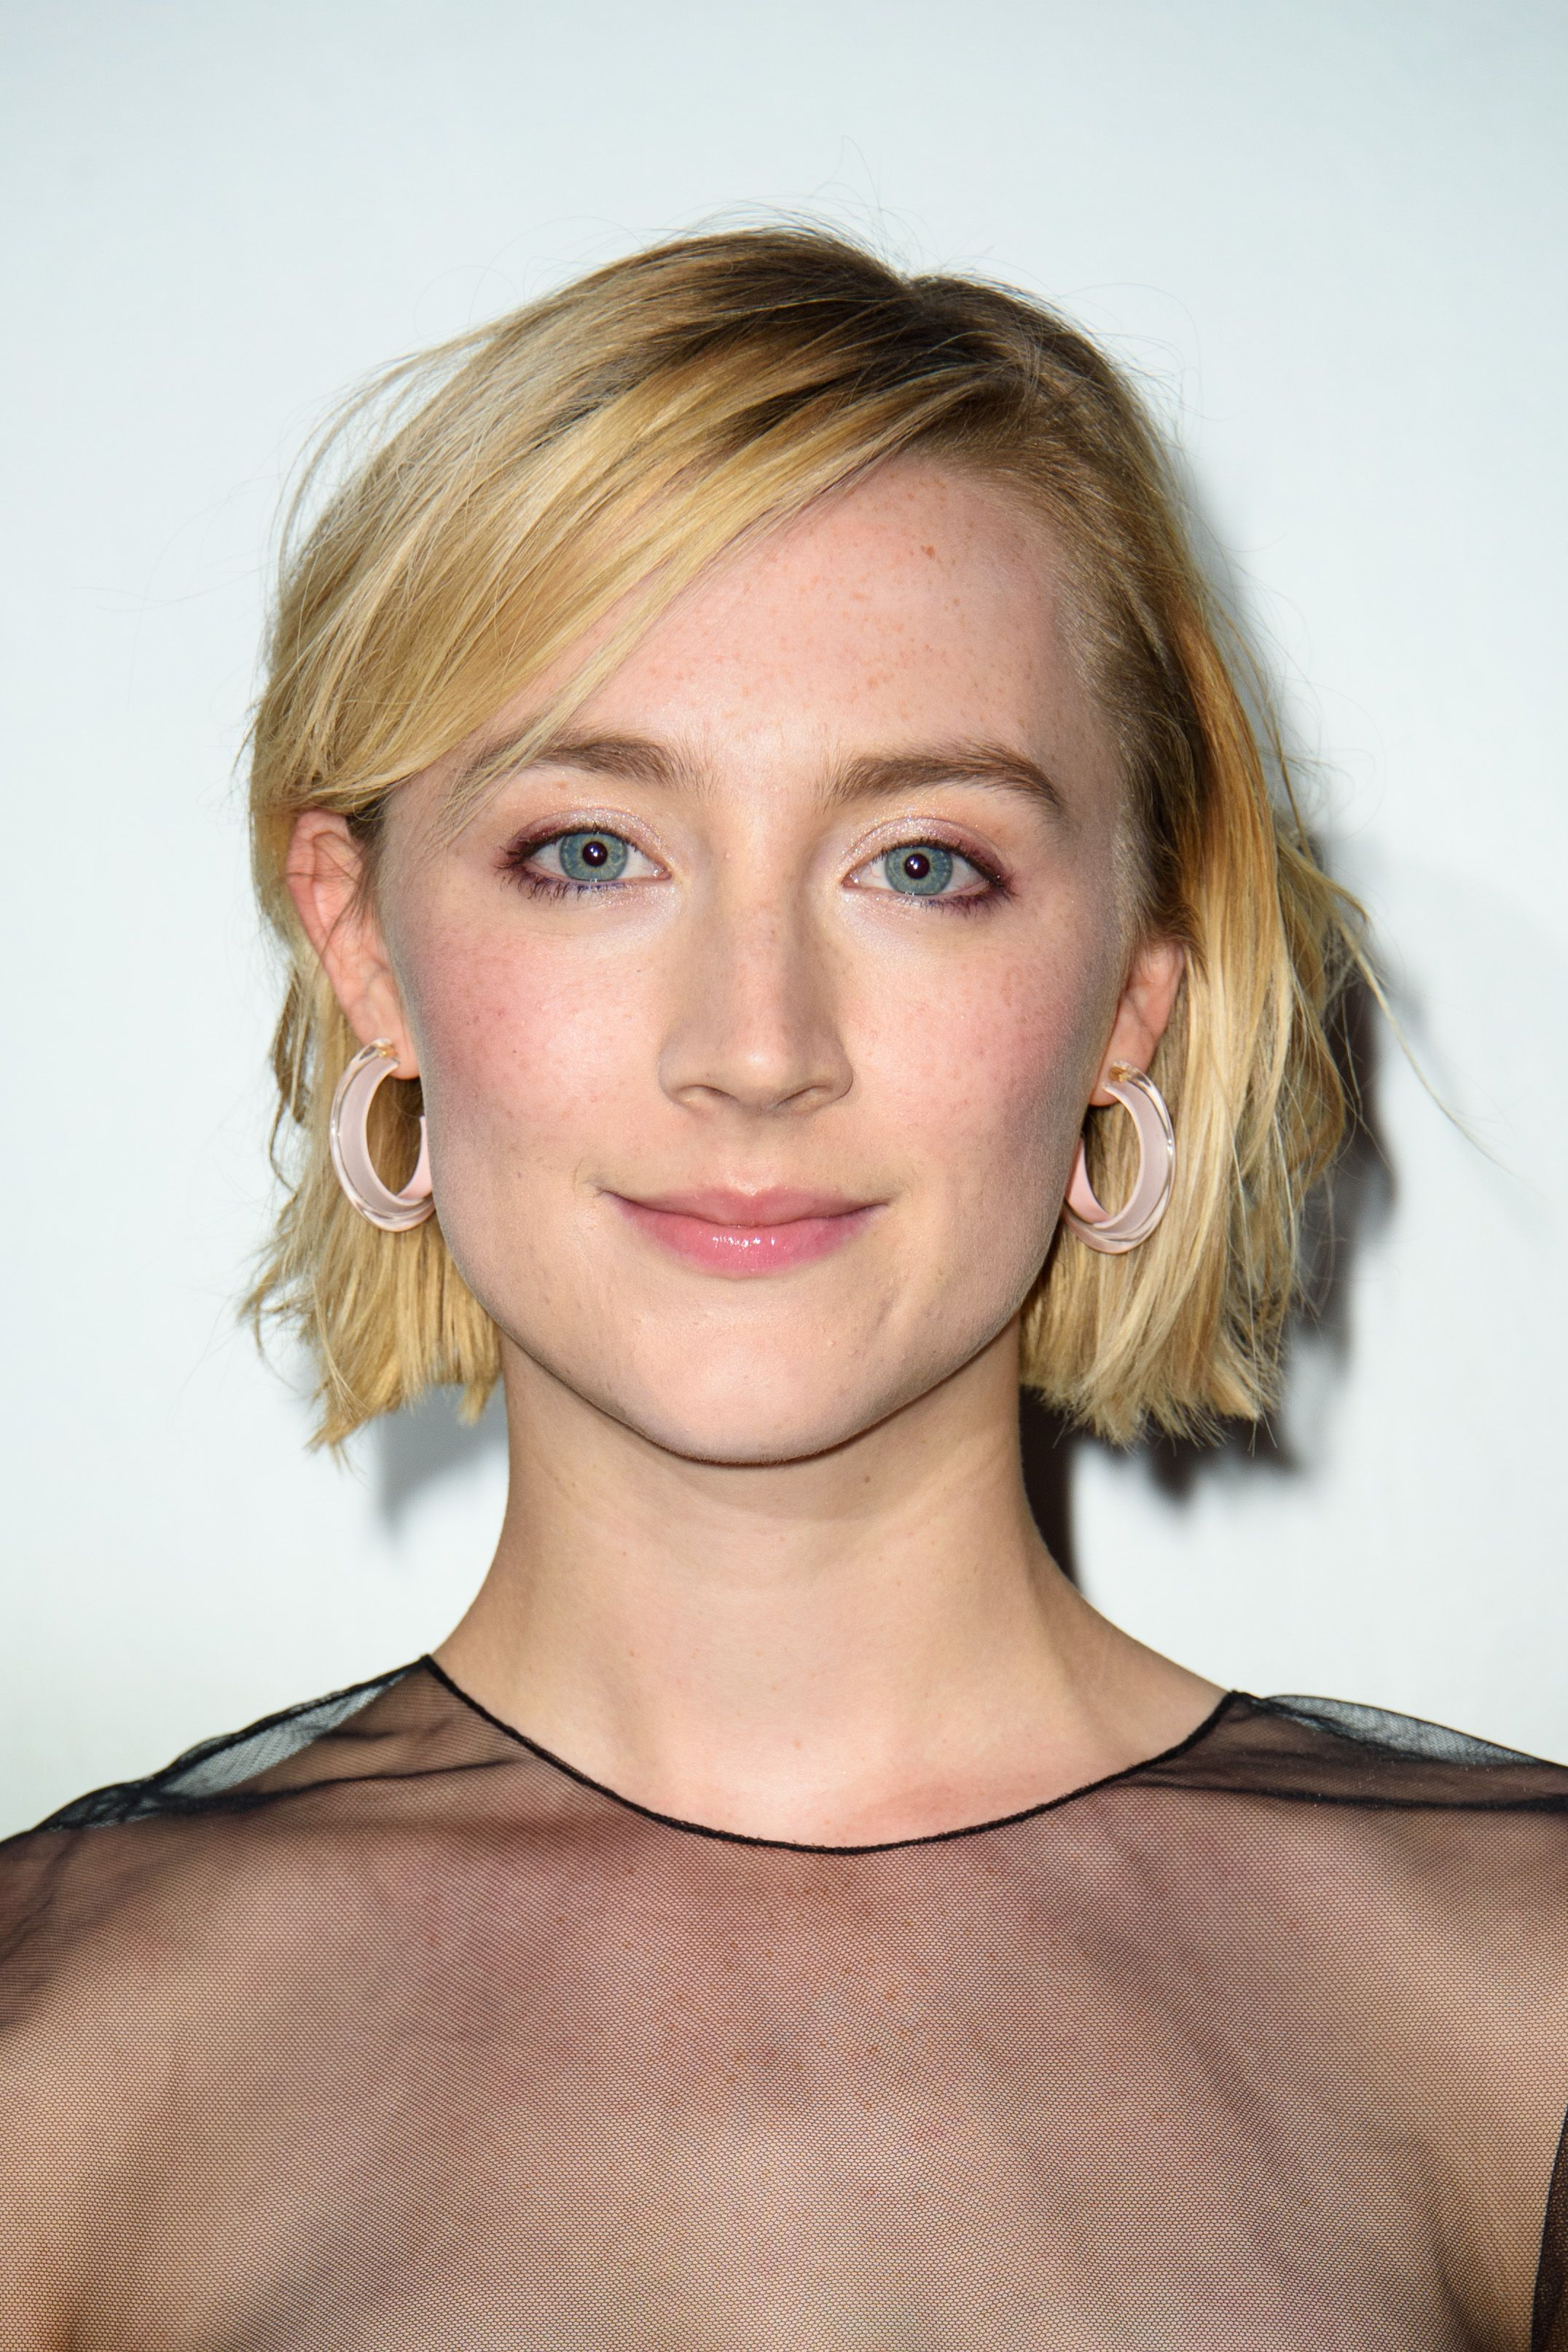 40 Cute Short Hairstyles For Women How To Style Short Haircuts